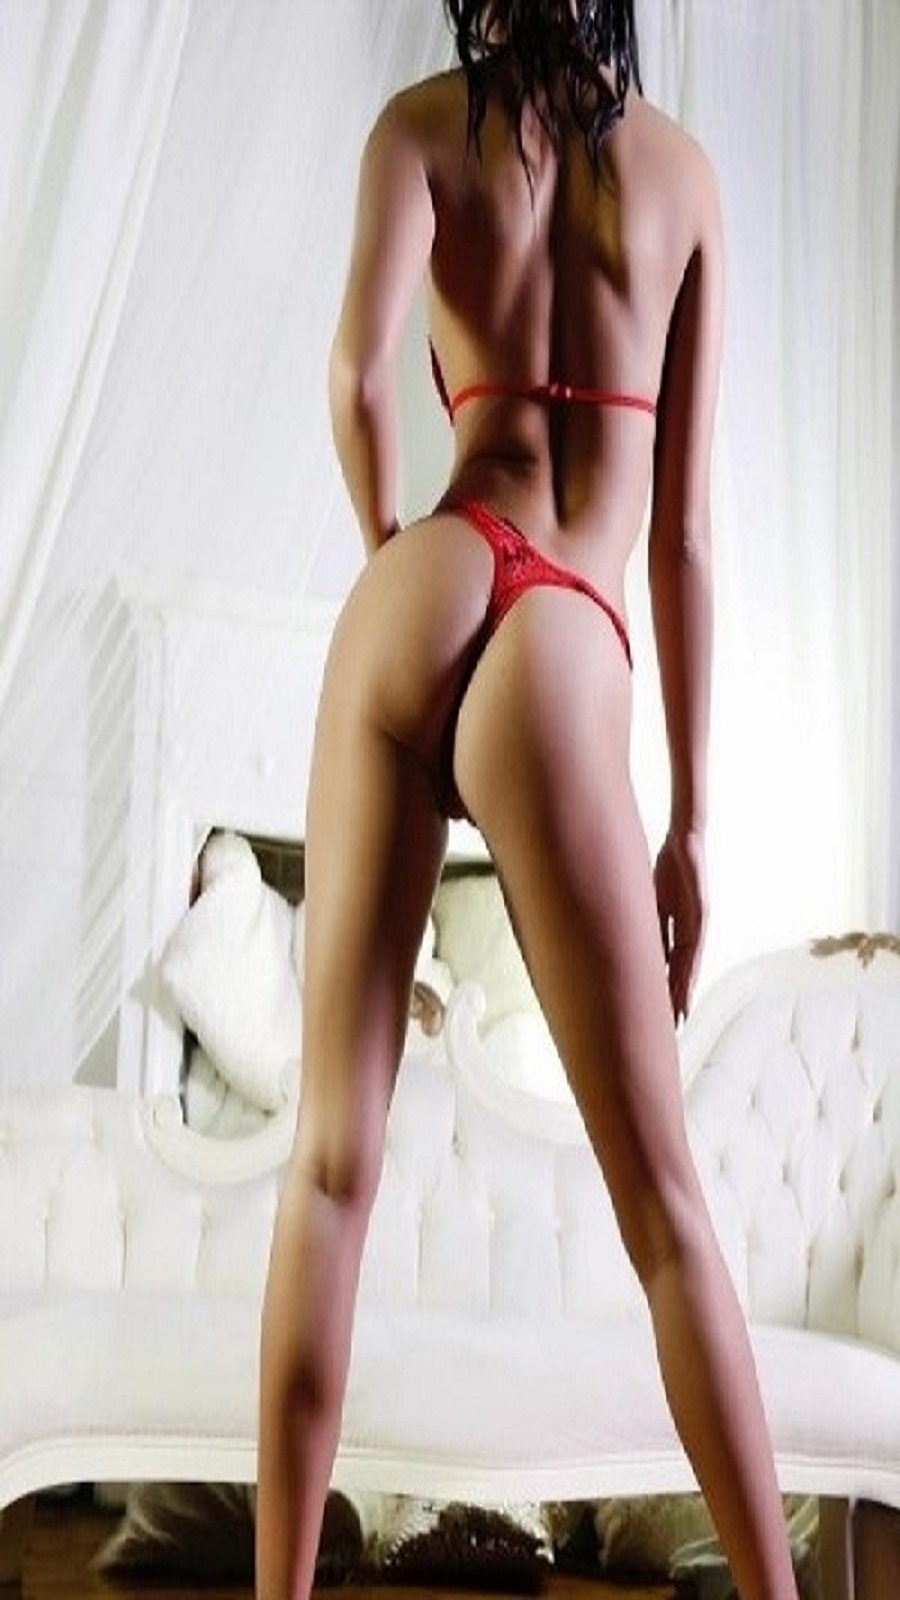 If you are looking for the perfect companion tonight give us a call on 07399733096 to book Leah for the best night of your life.